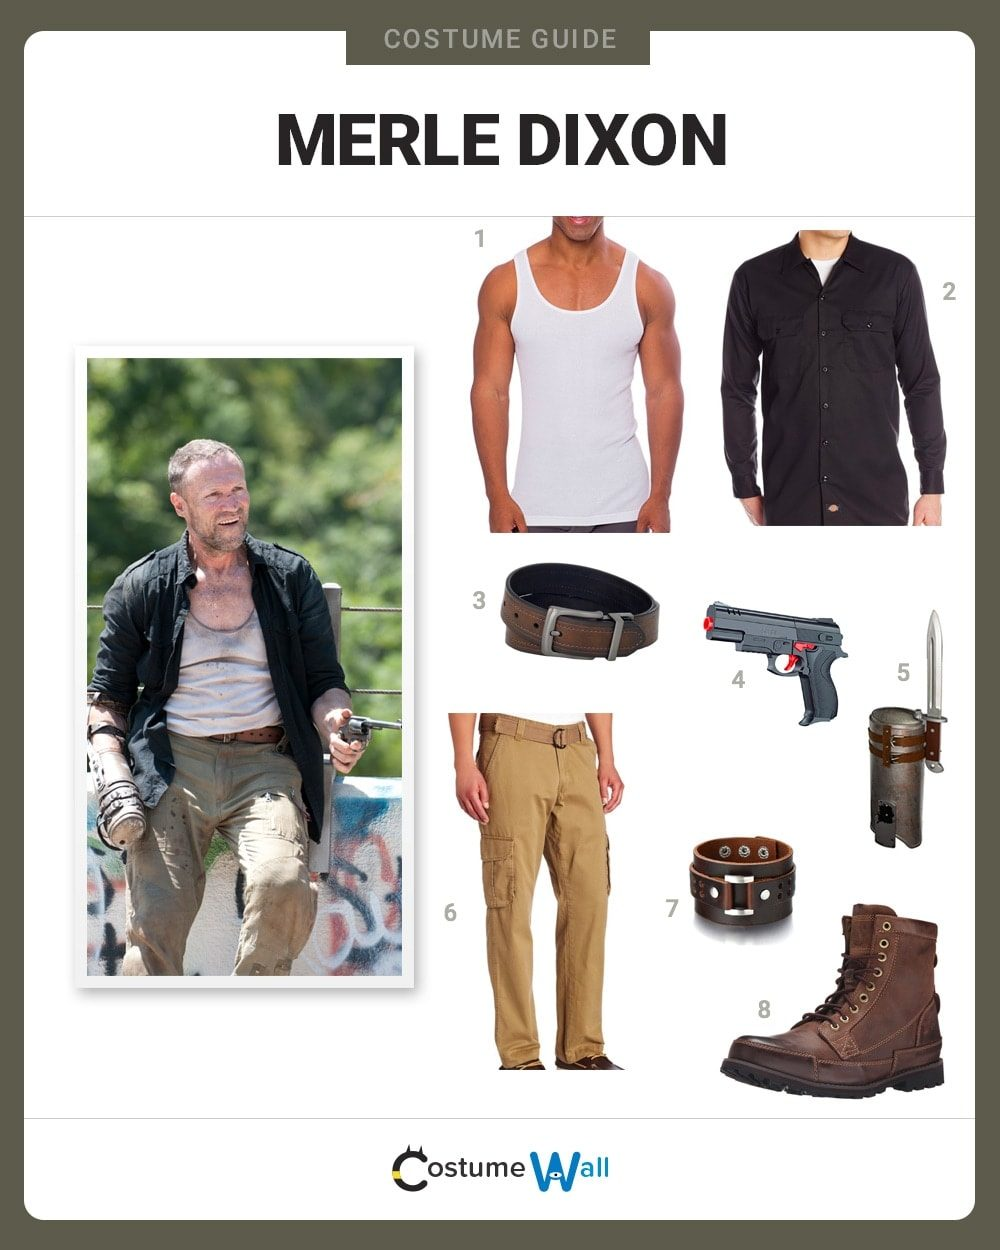 Merle Dixon Costume Guide